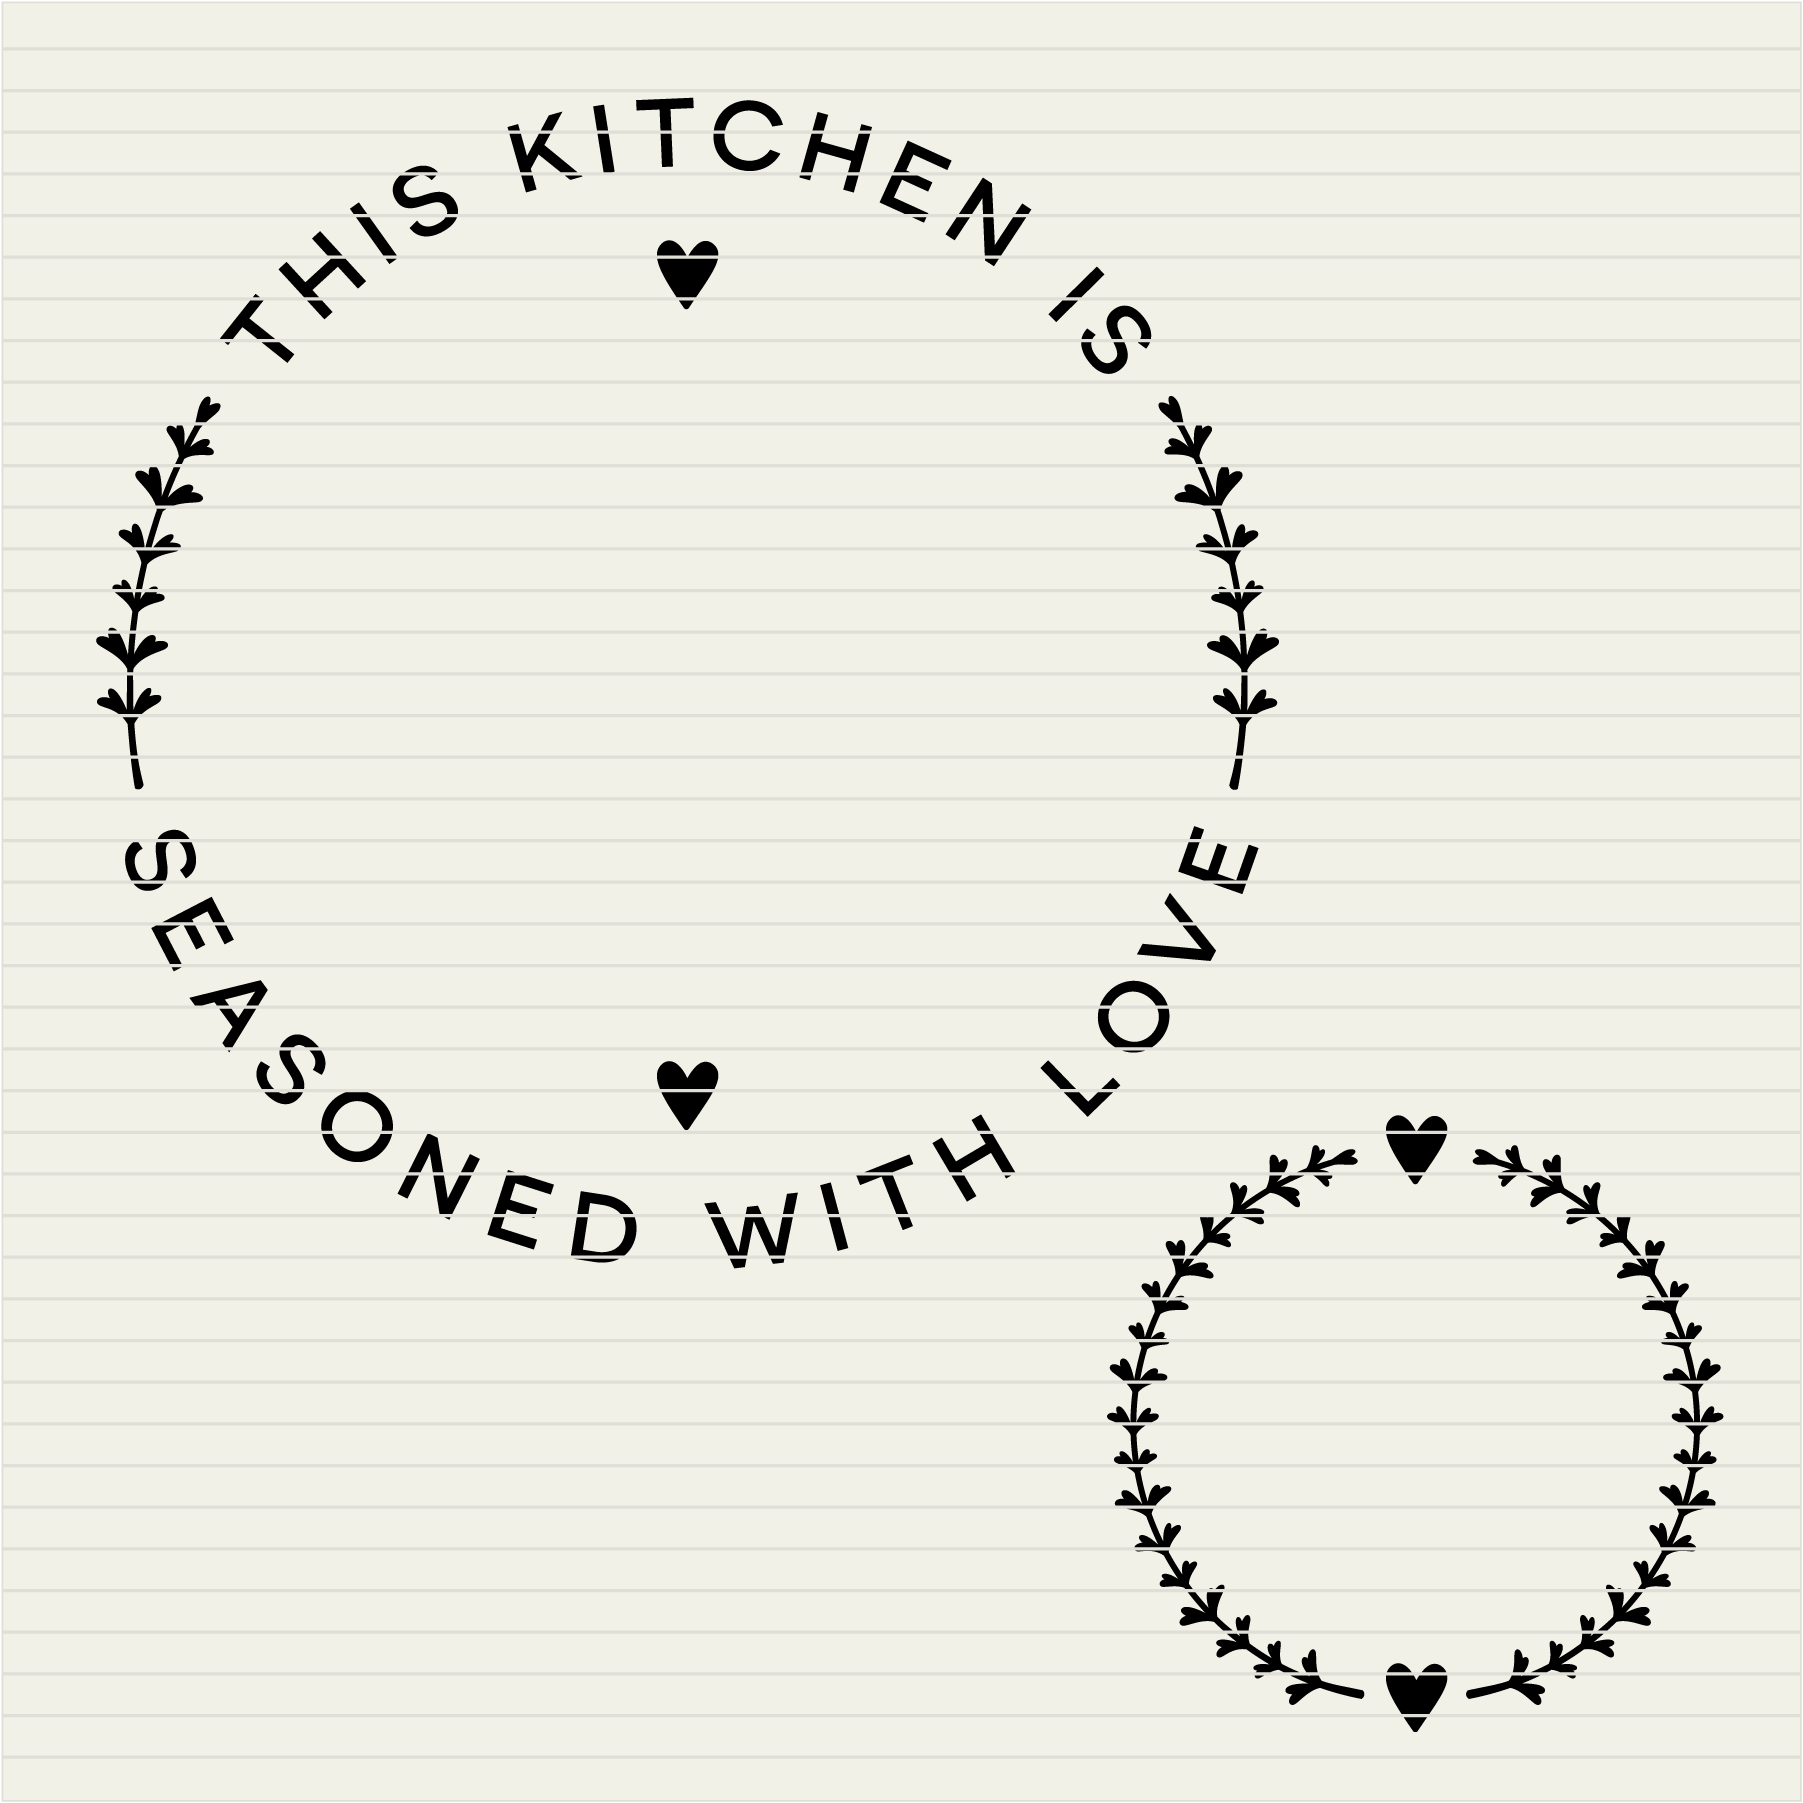 DIY personalize SVG Kitchen Seasoned with Love monogram frame- SVG DXF EPSPNG - Cricut & Silhouette - clean cutting files example image 3